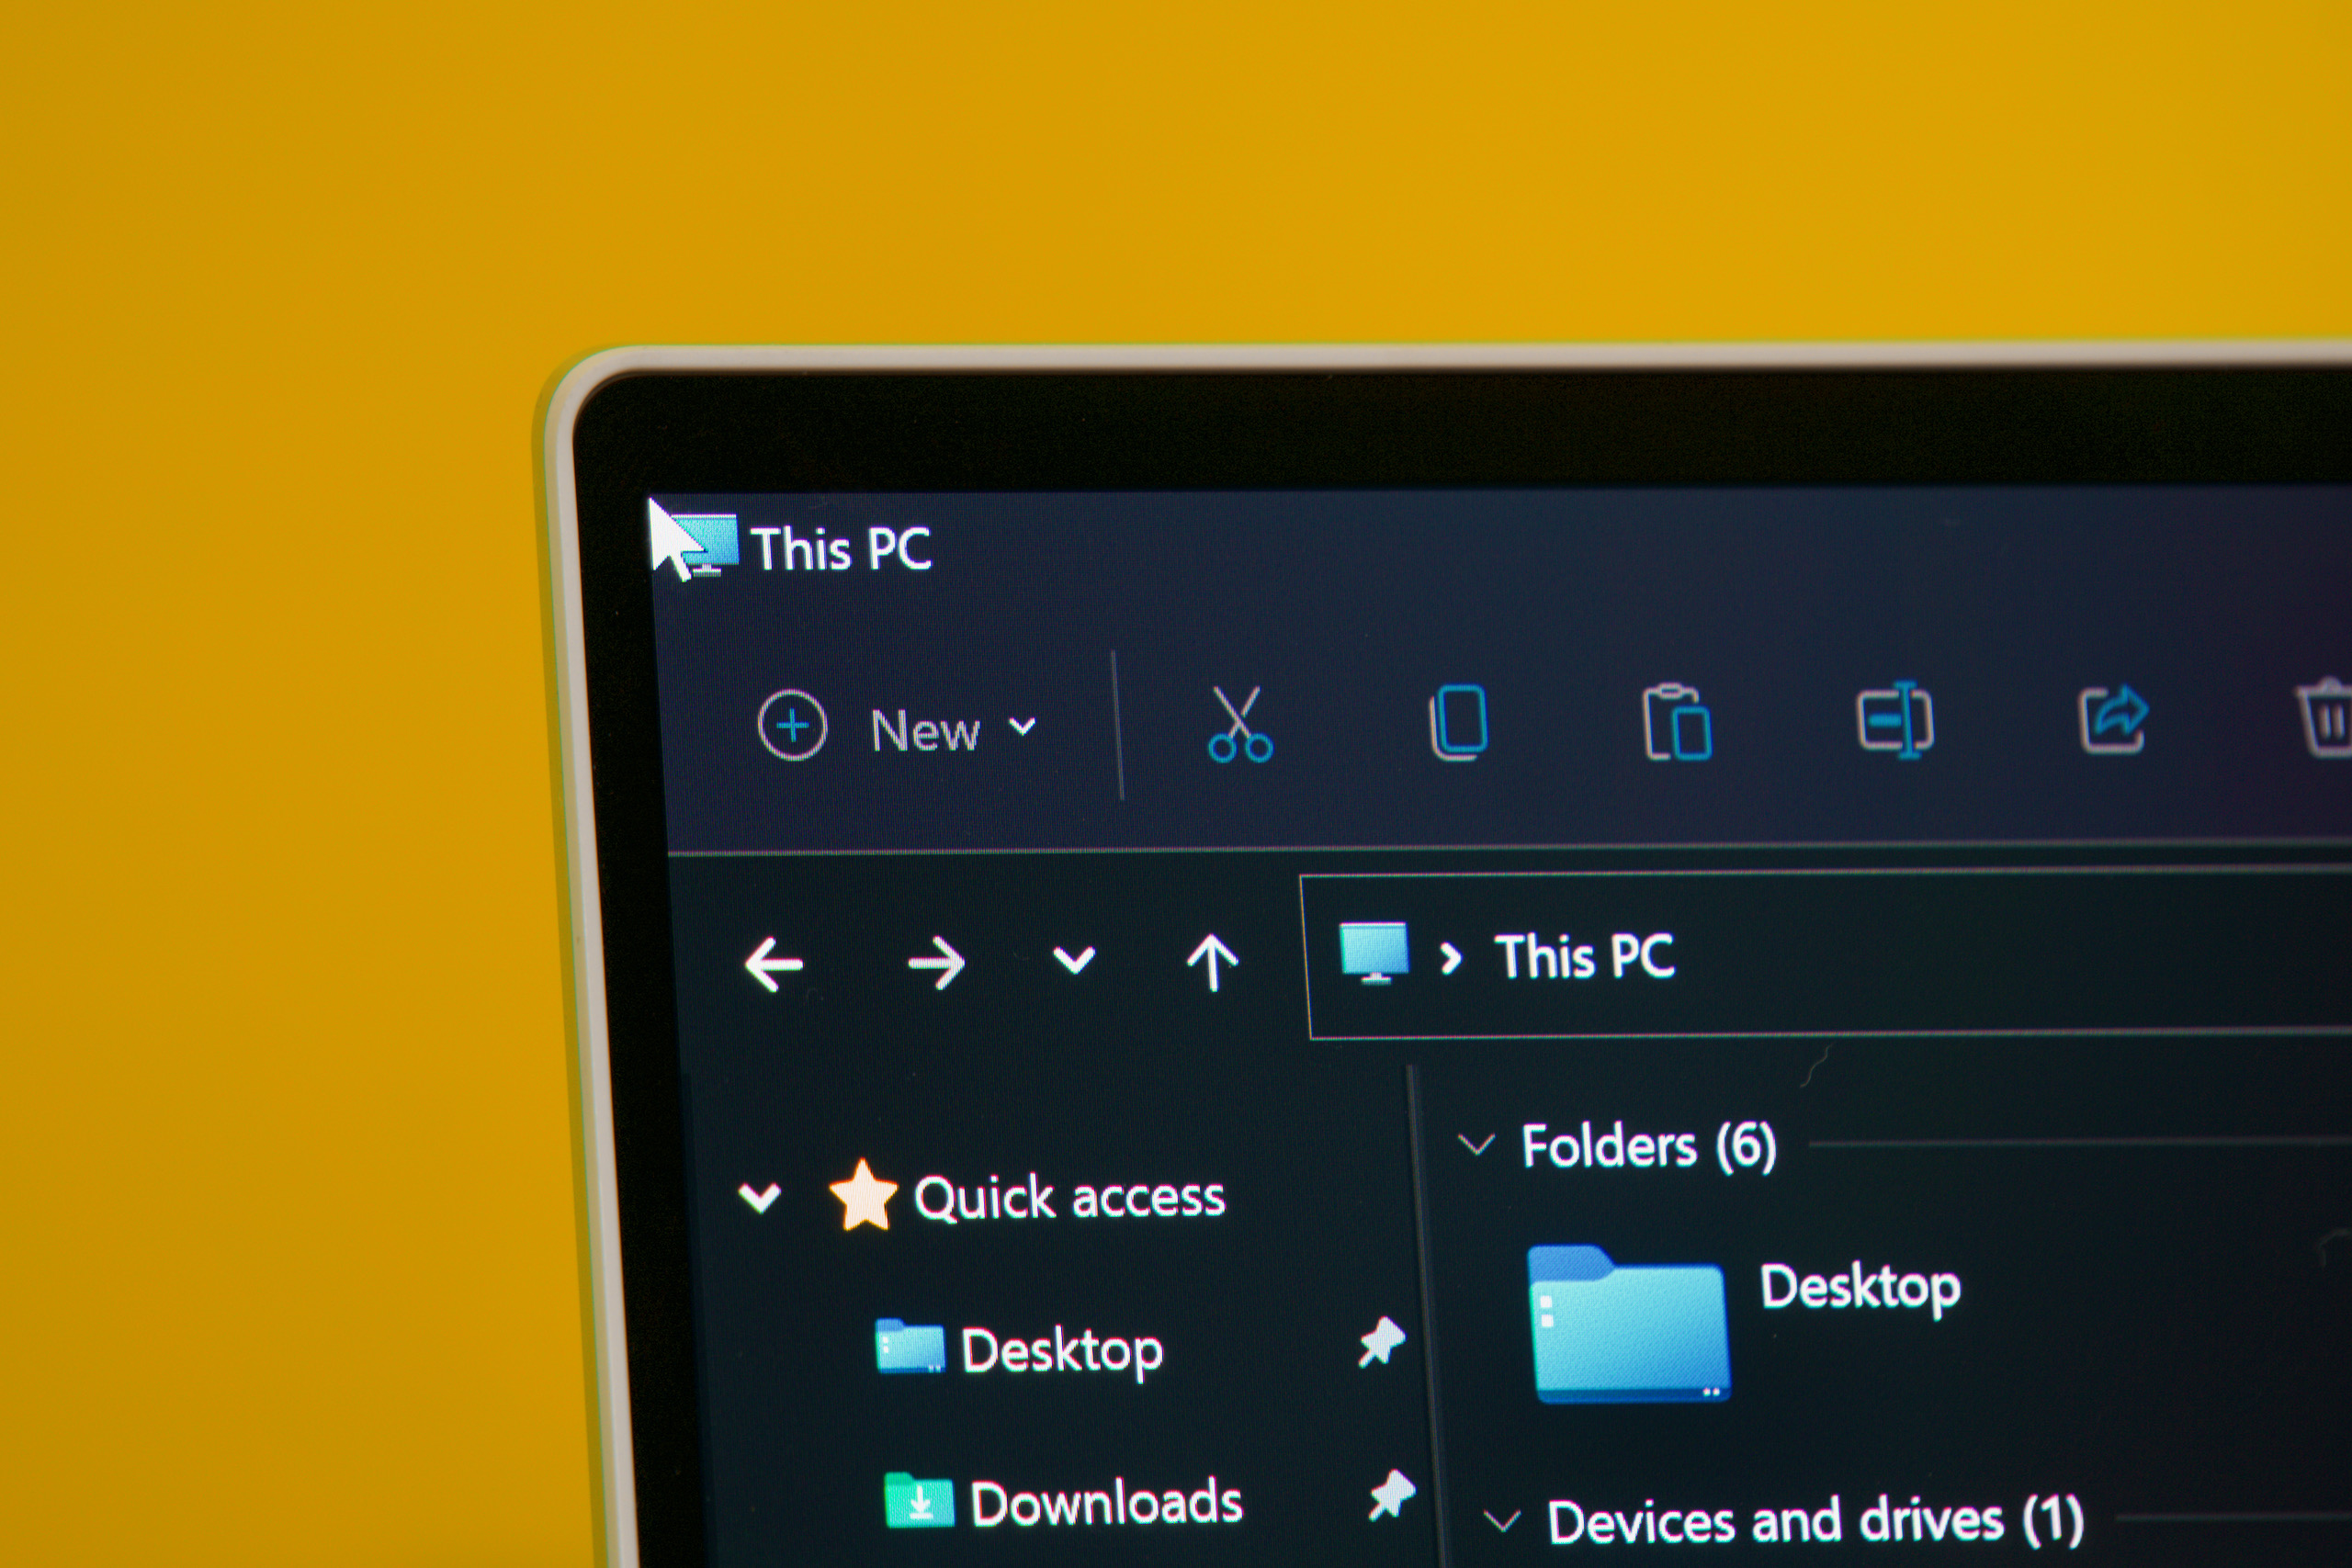 Here's Windows 11 on a typical square-cornered screen. The mouse pointer is all the way in the top-left corner of the screen, and it's still fully visible.